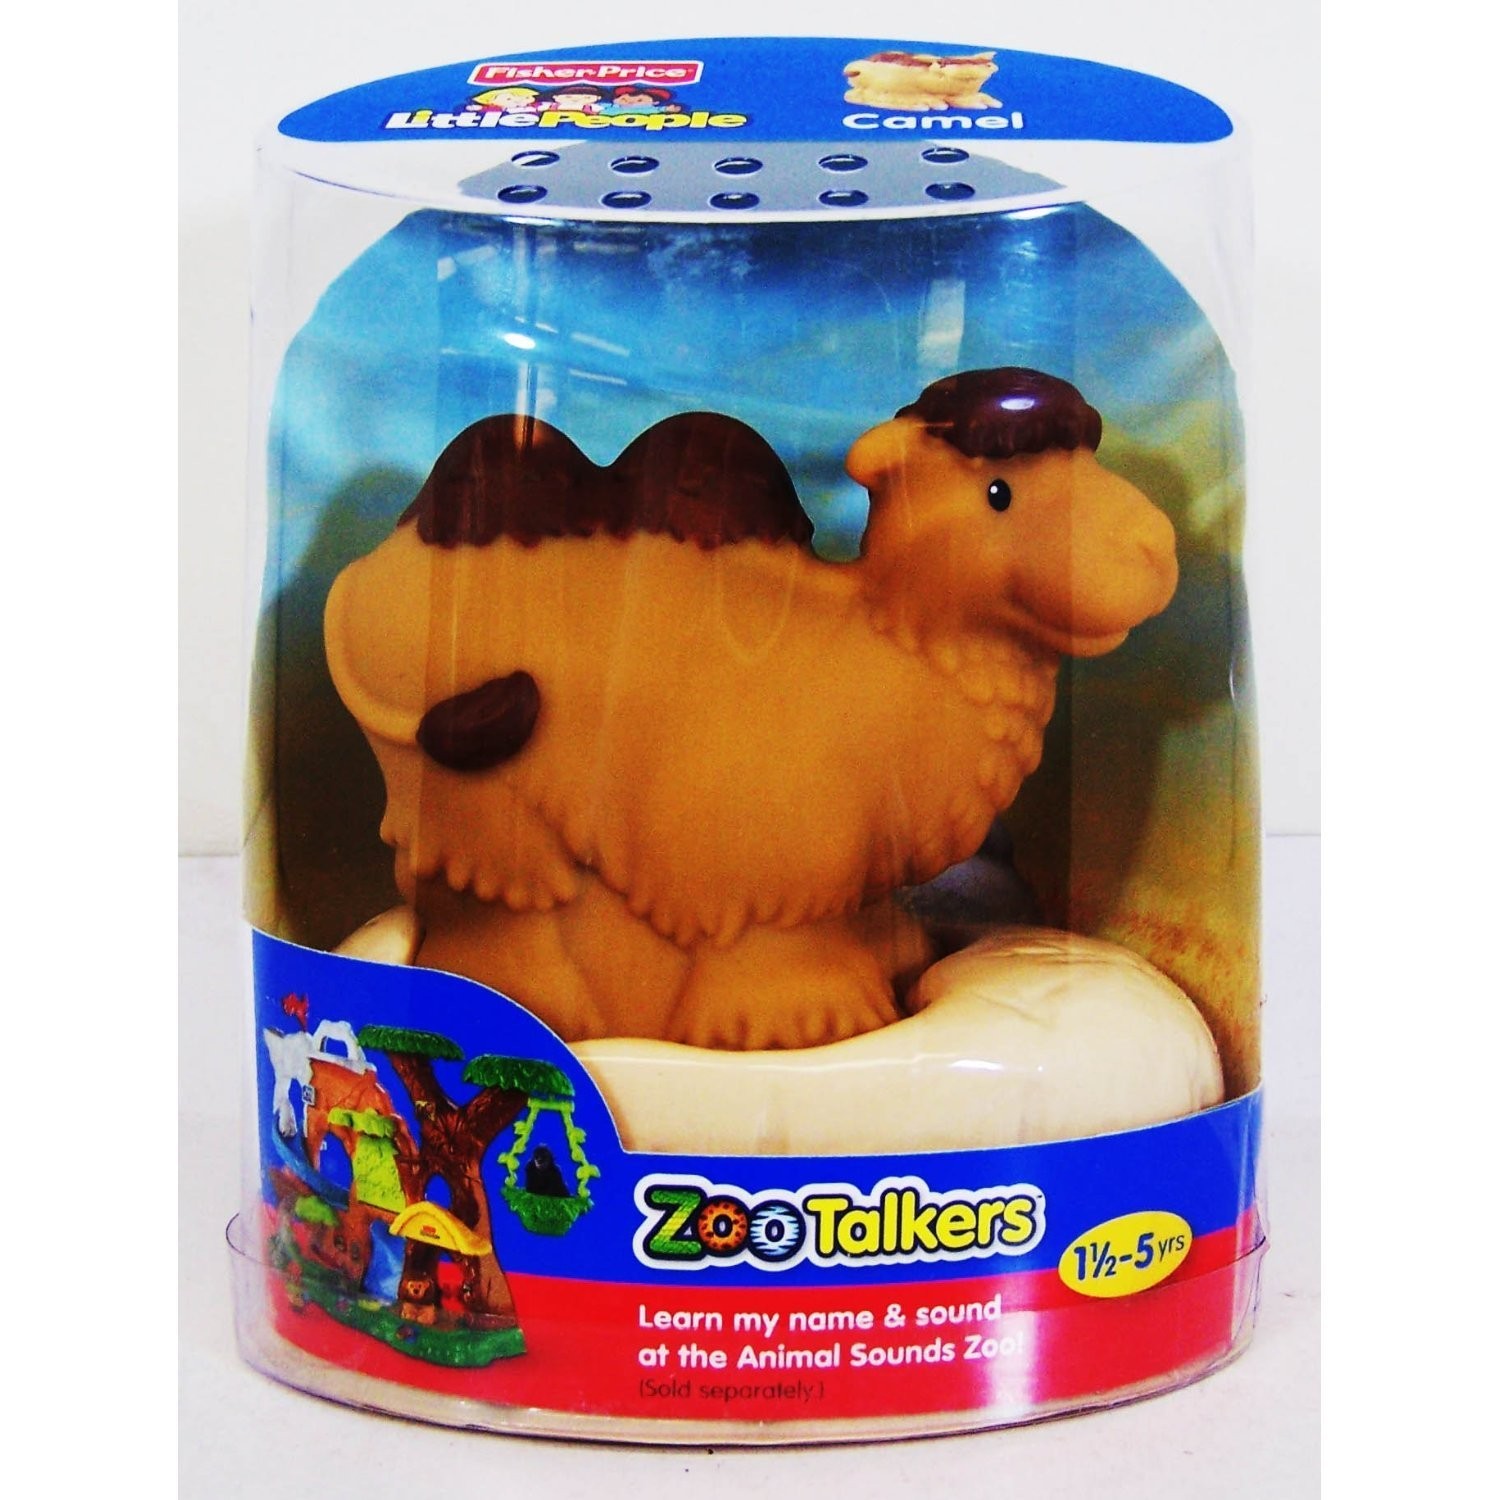 Fisher Price Little People Zoo Talkers 4 99 Down From 14 99 Become A Coupon Queen